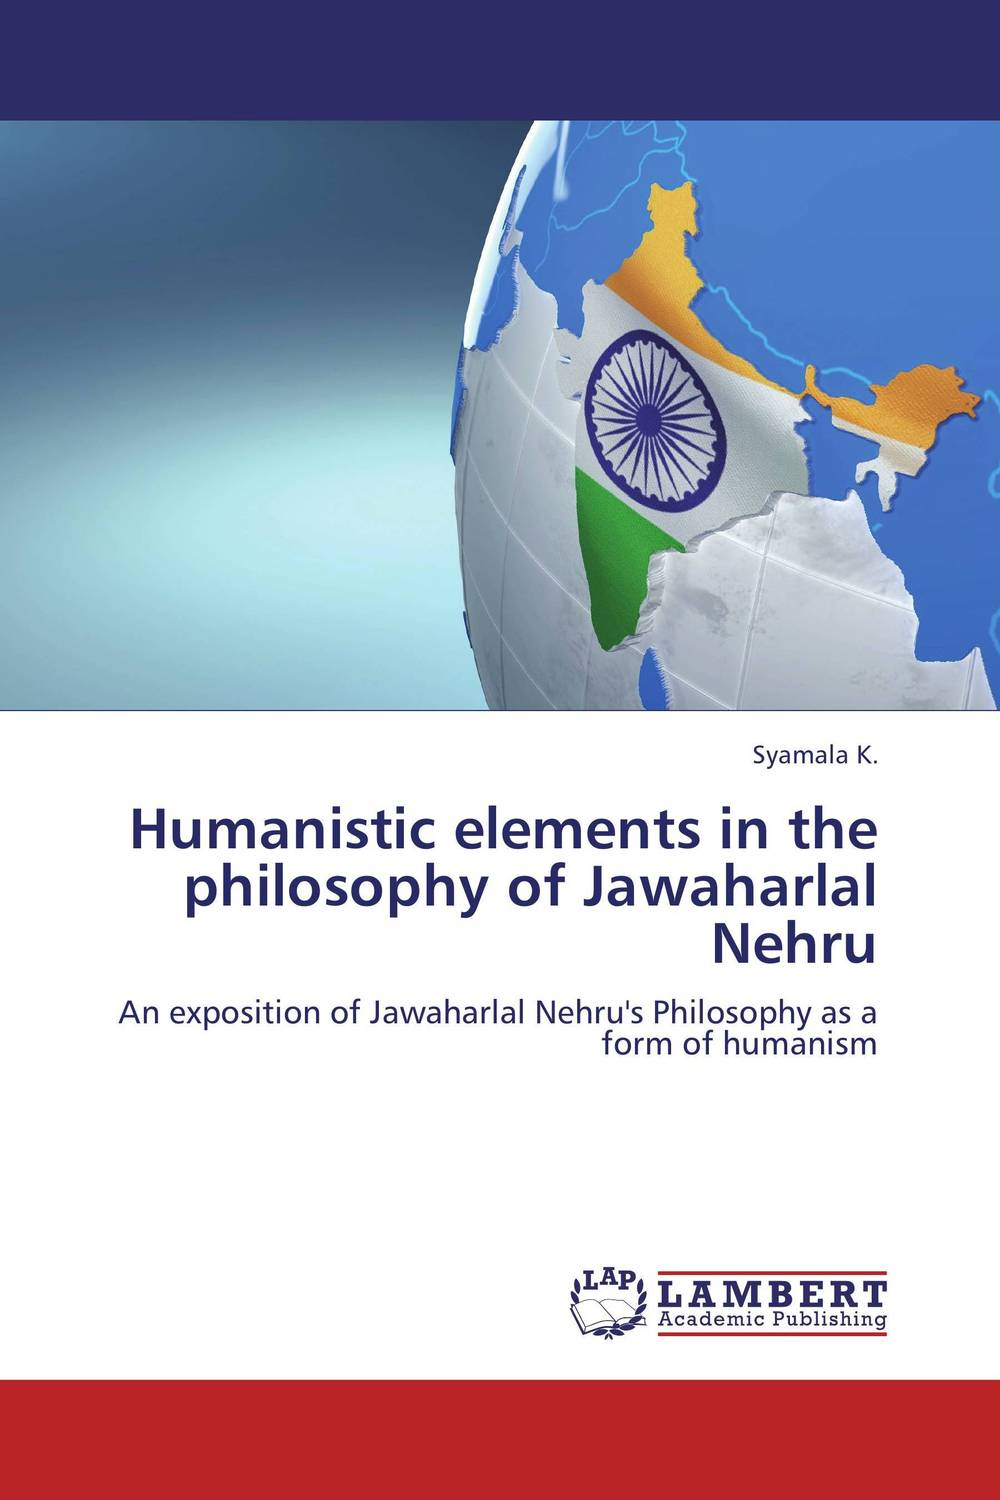 цены  Humanistic elements in the philosophy of Jawaharlal Nehru